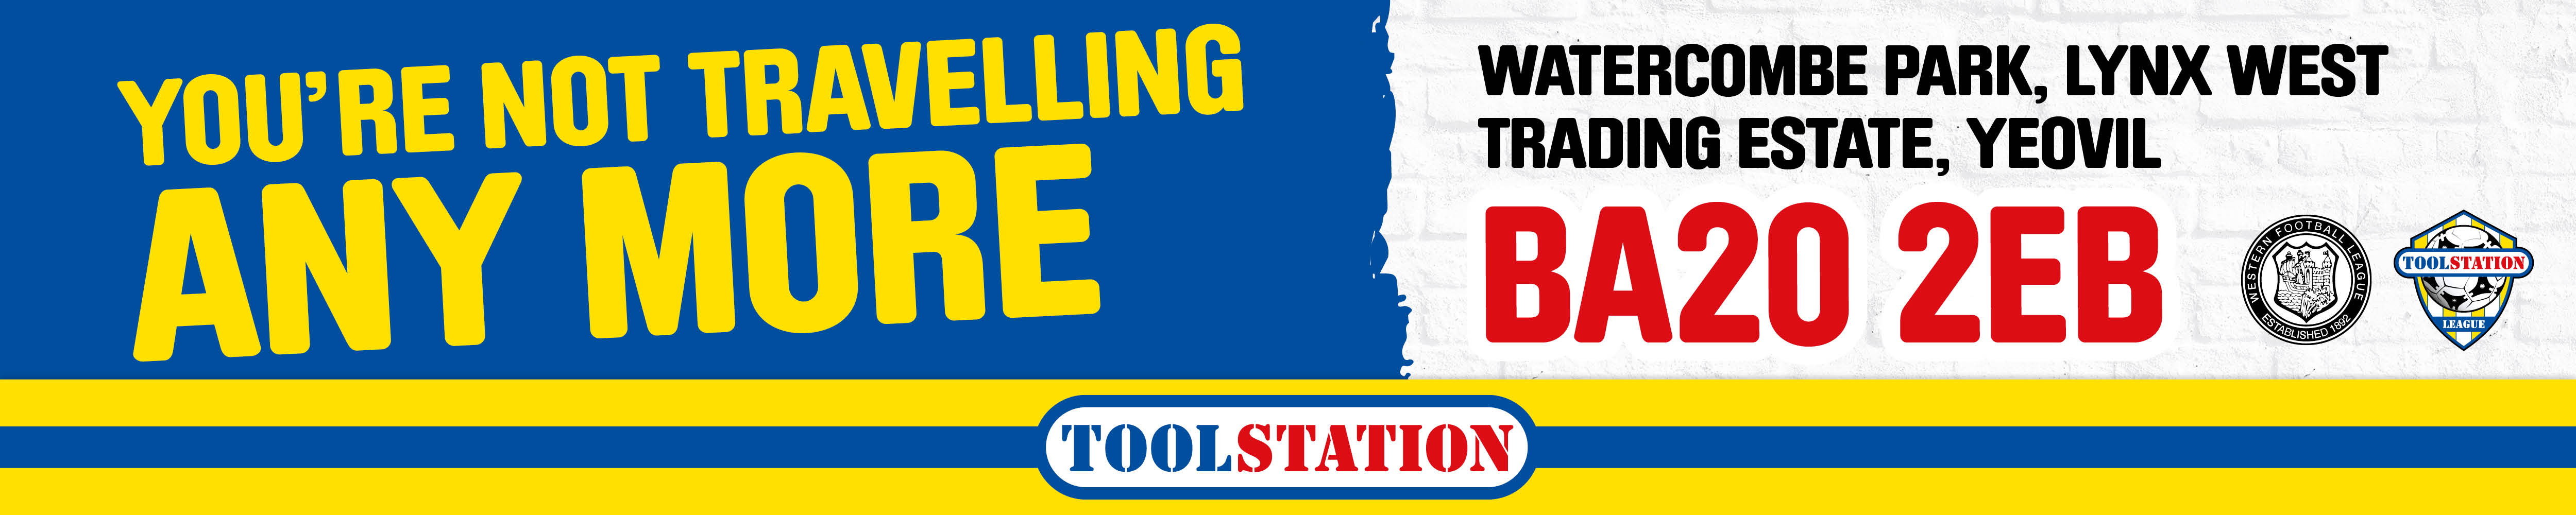 Toolstation league clubs - Longwell green swimming pool times ...